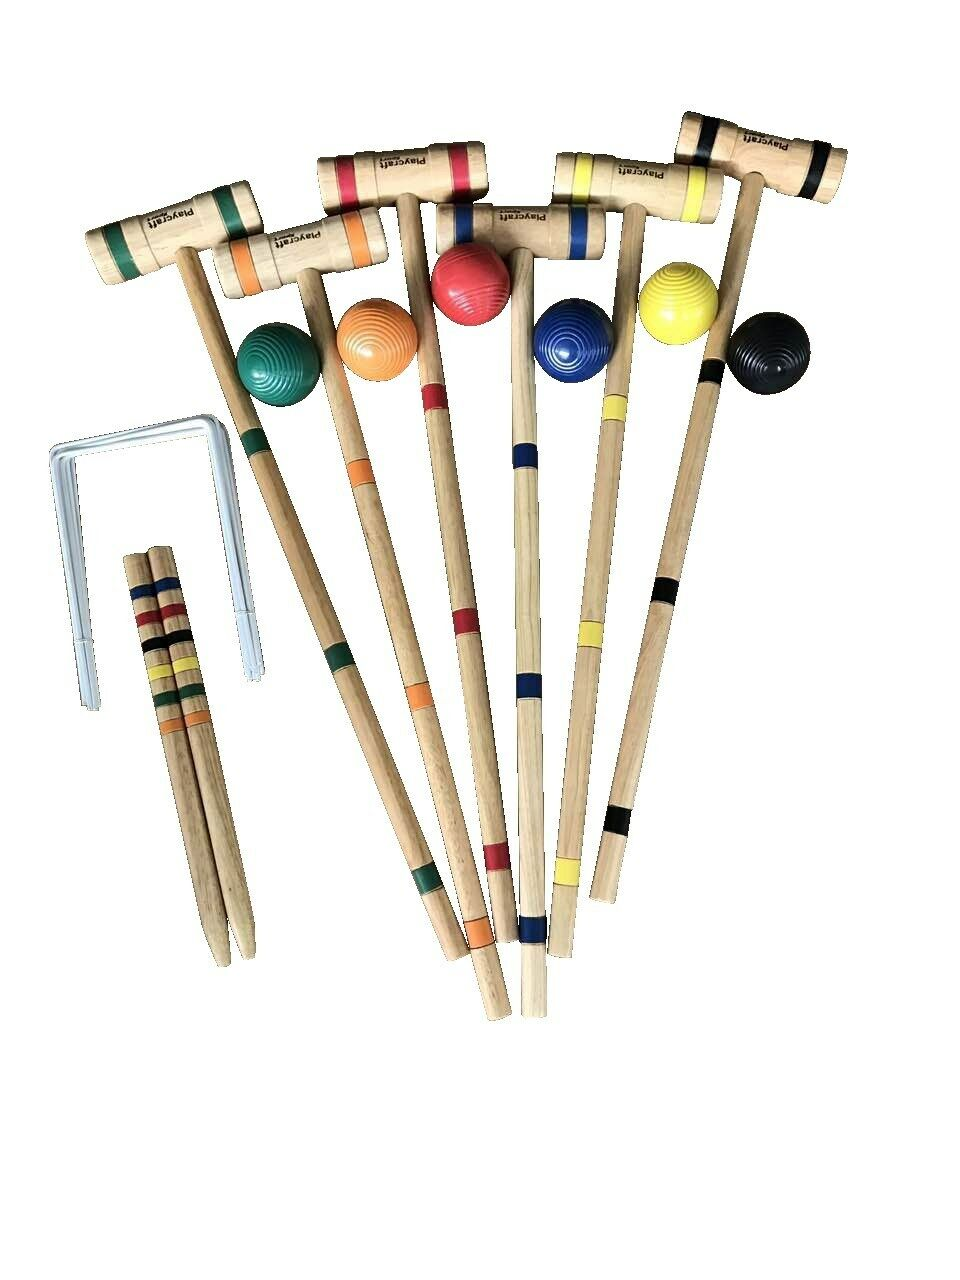 Playcraft Sport Deluxe Hardwood Croquet Set